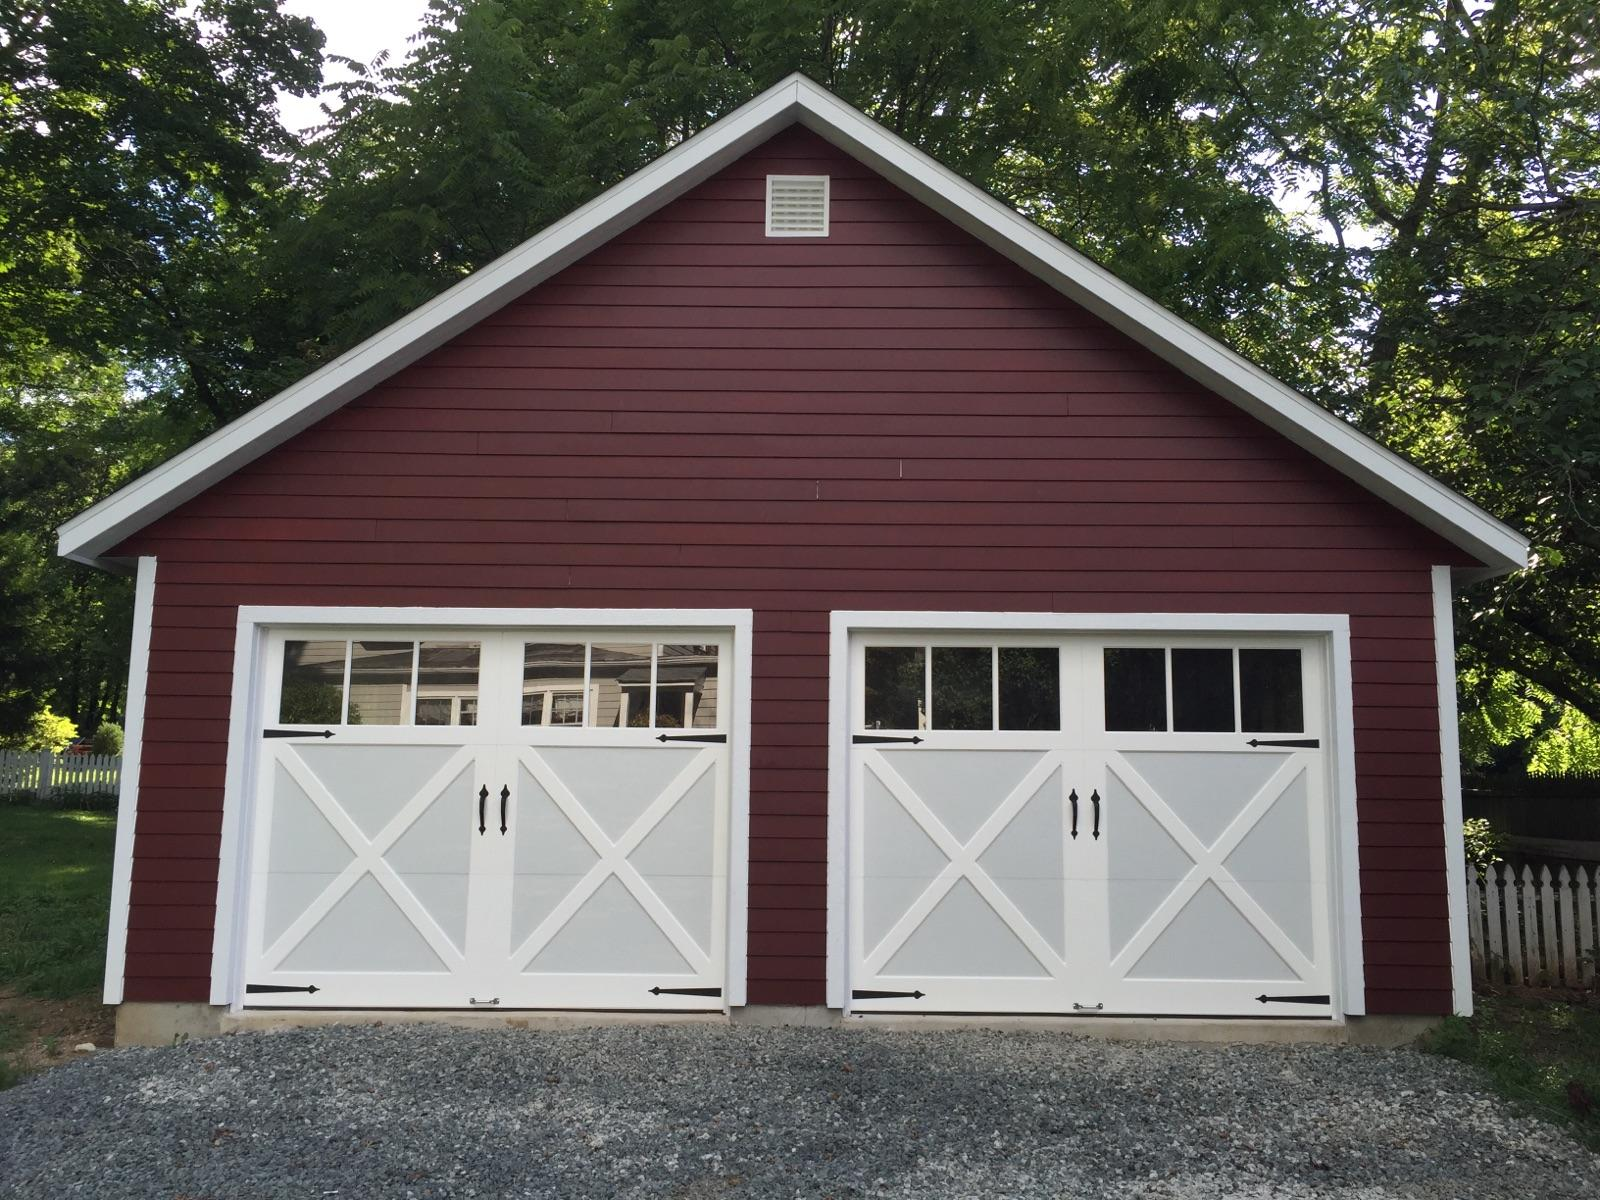 Garages amish garage 1 car garage 2 car garage 3 car for 3 car attached garage plans